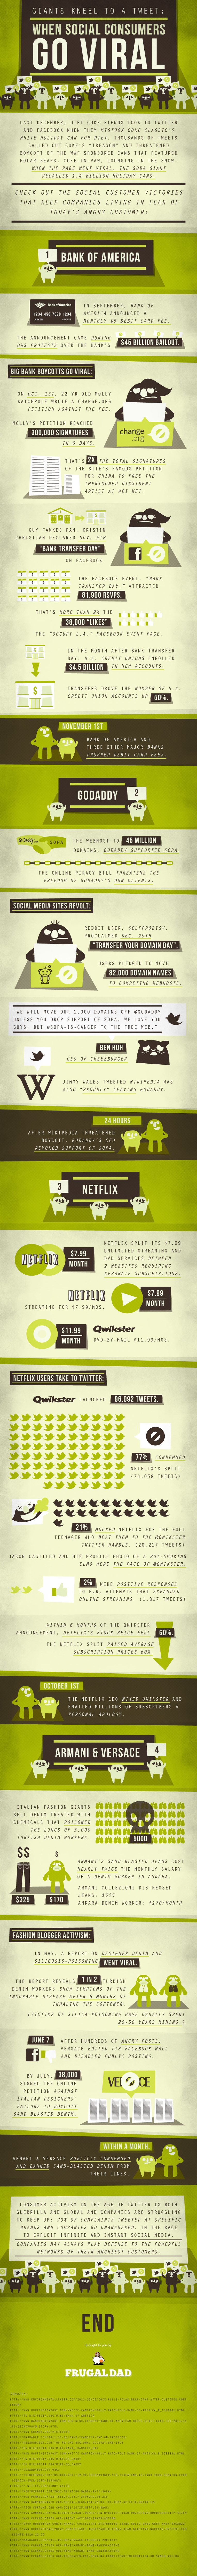 When-Social-Consumers-Go-Viral-infographic